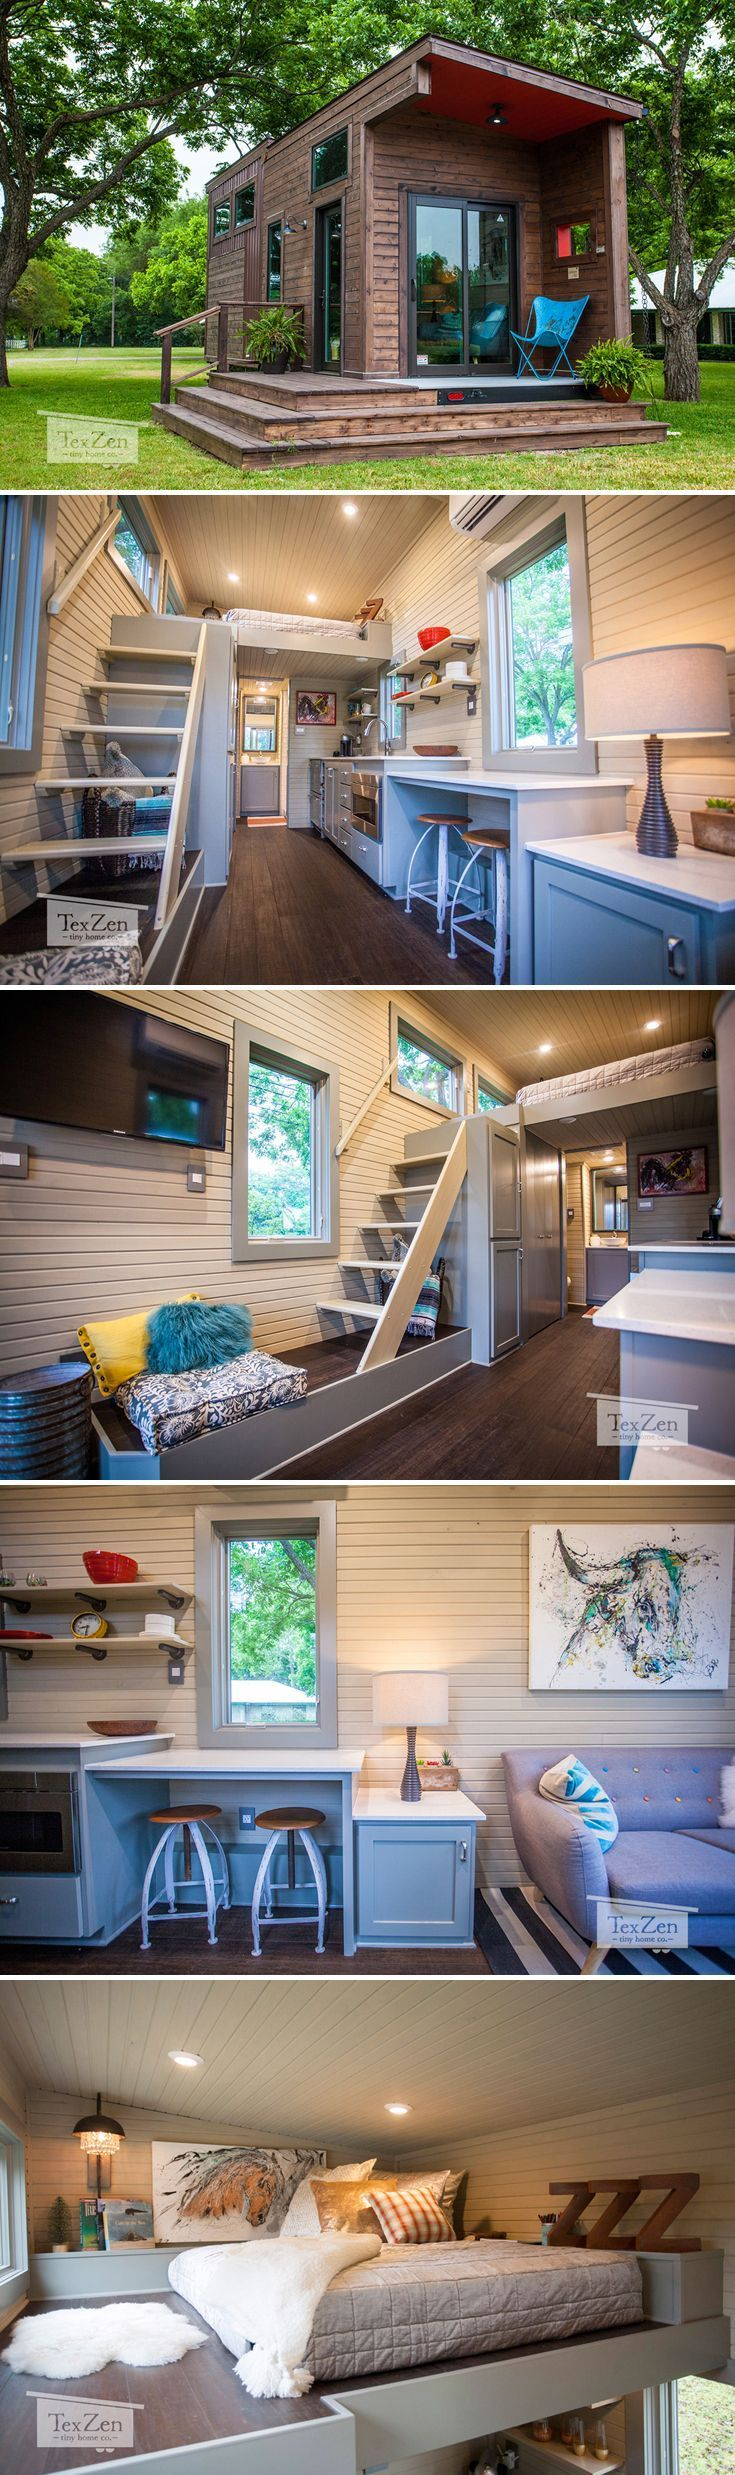 21 best shipping container house ideas images on pinterest